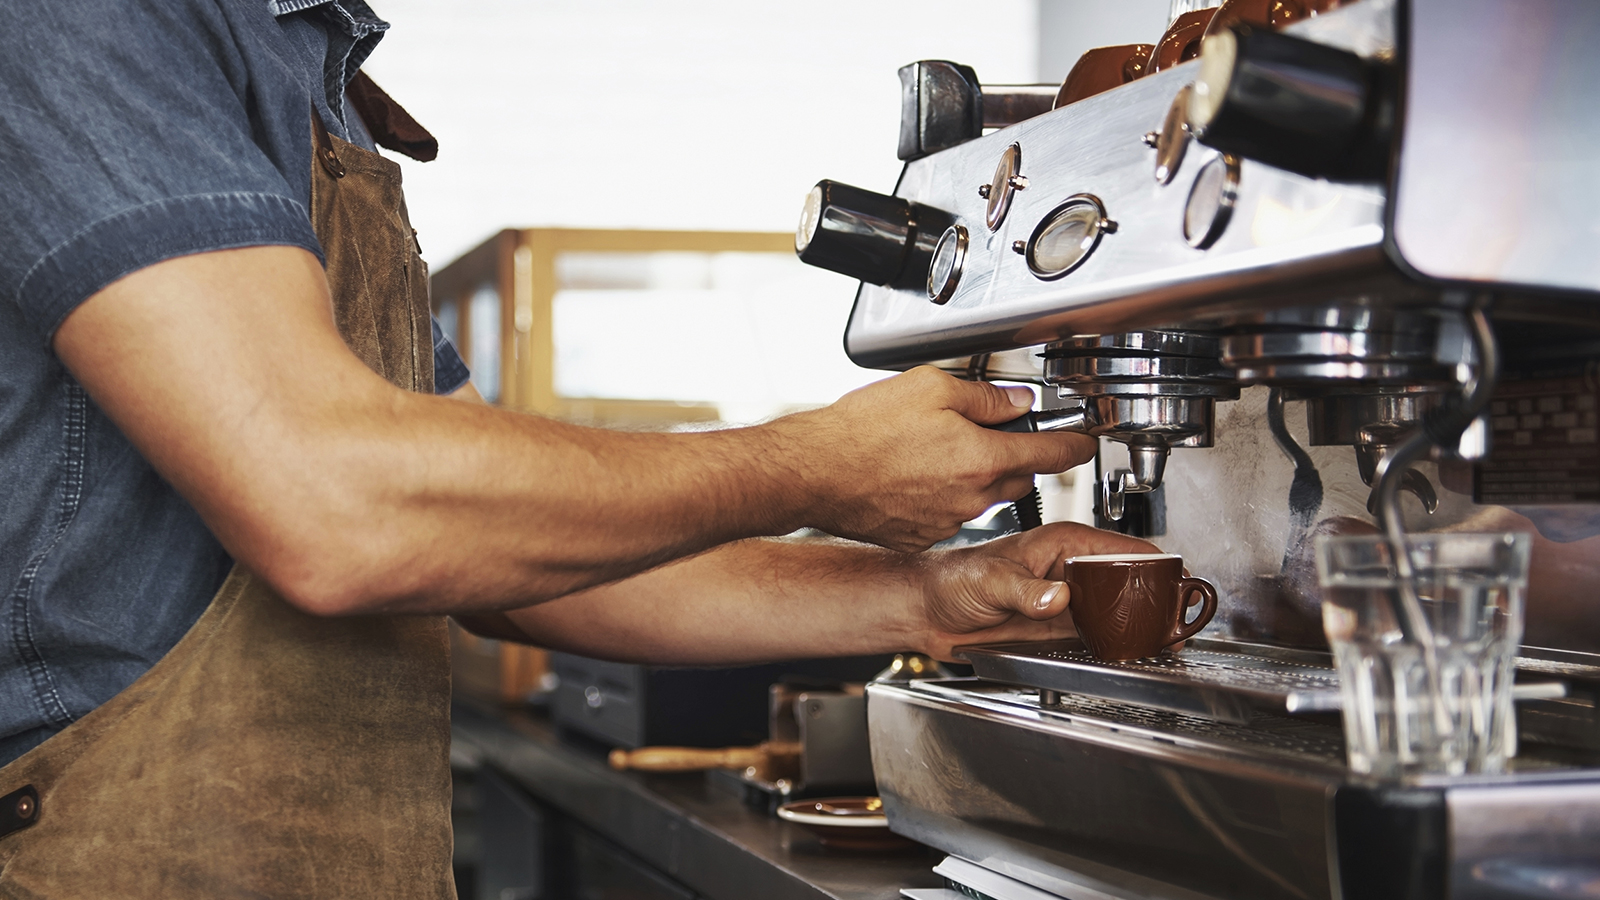 A barista preparing an espresso drink in a coffee shop.